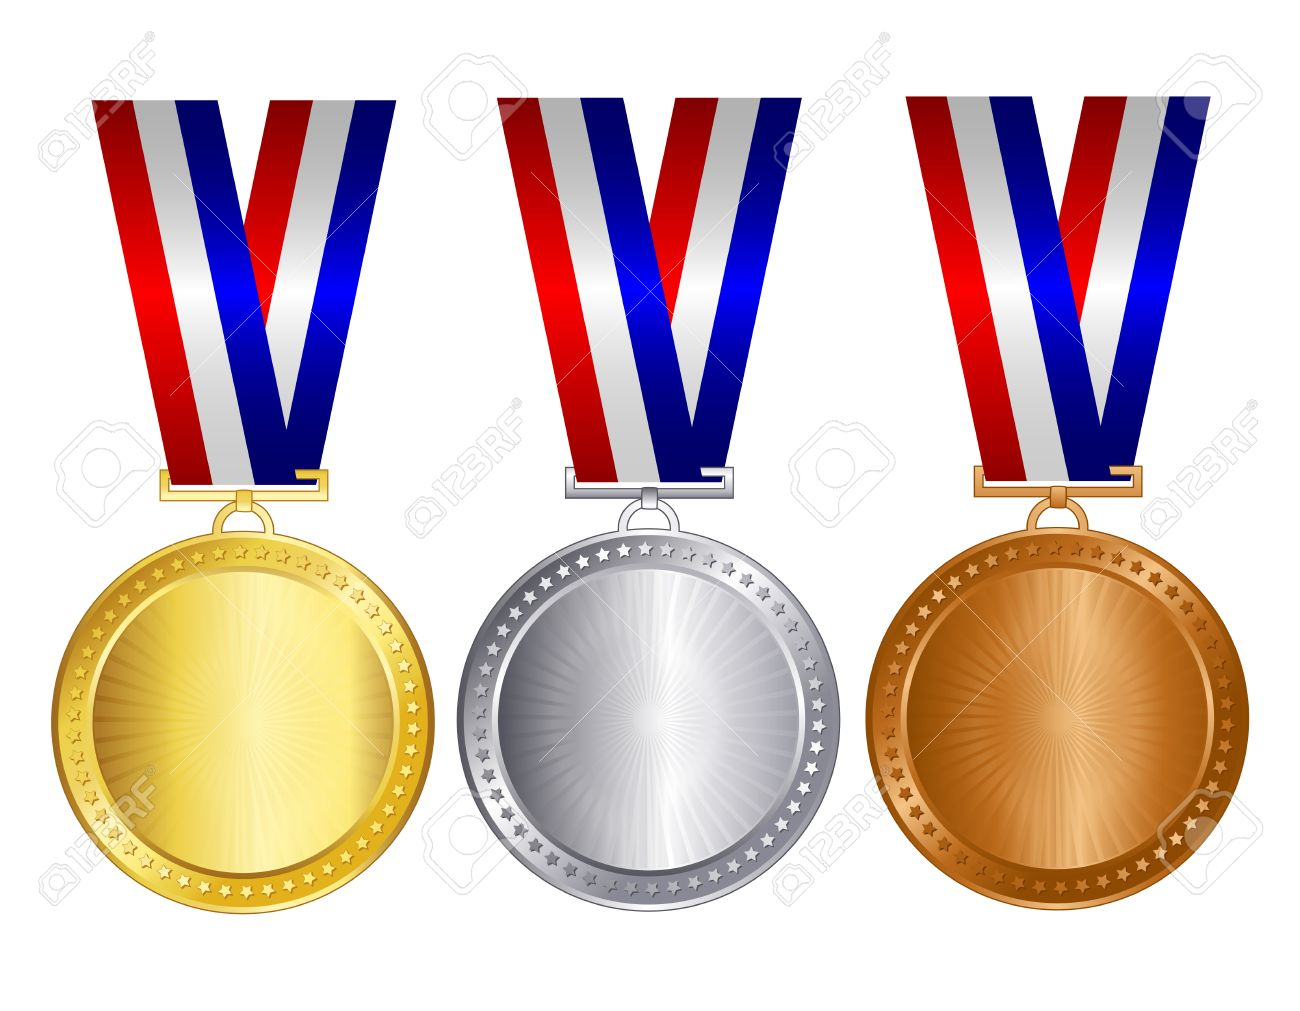 62c673d53f61 Gold silver and bronze medals with red blue and silver   white ribbons and  empty space